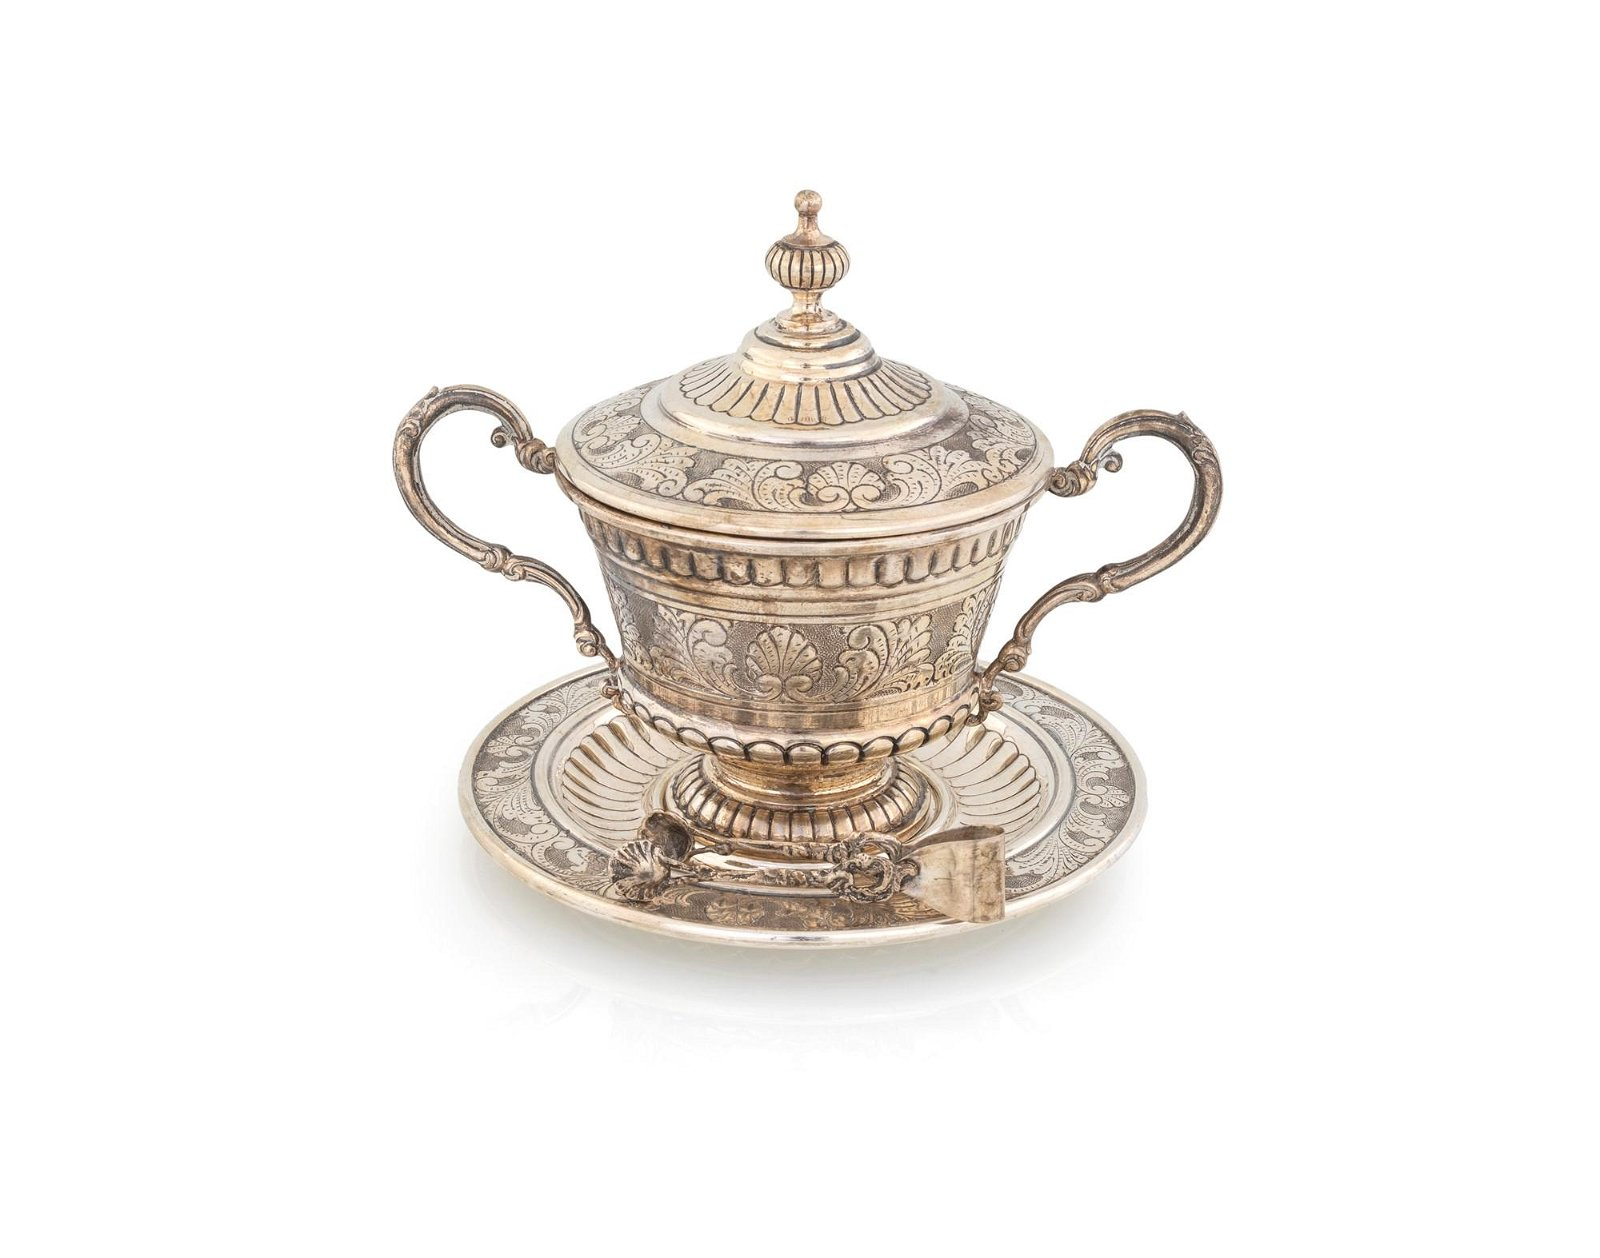 Sugar bowl with lit, plat and tweezers